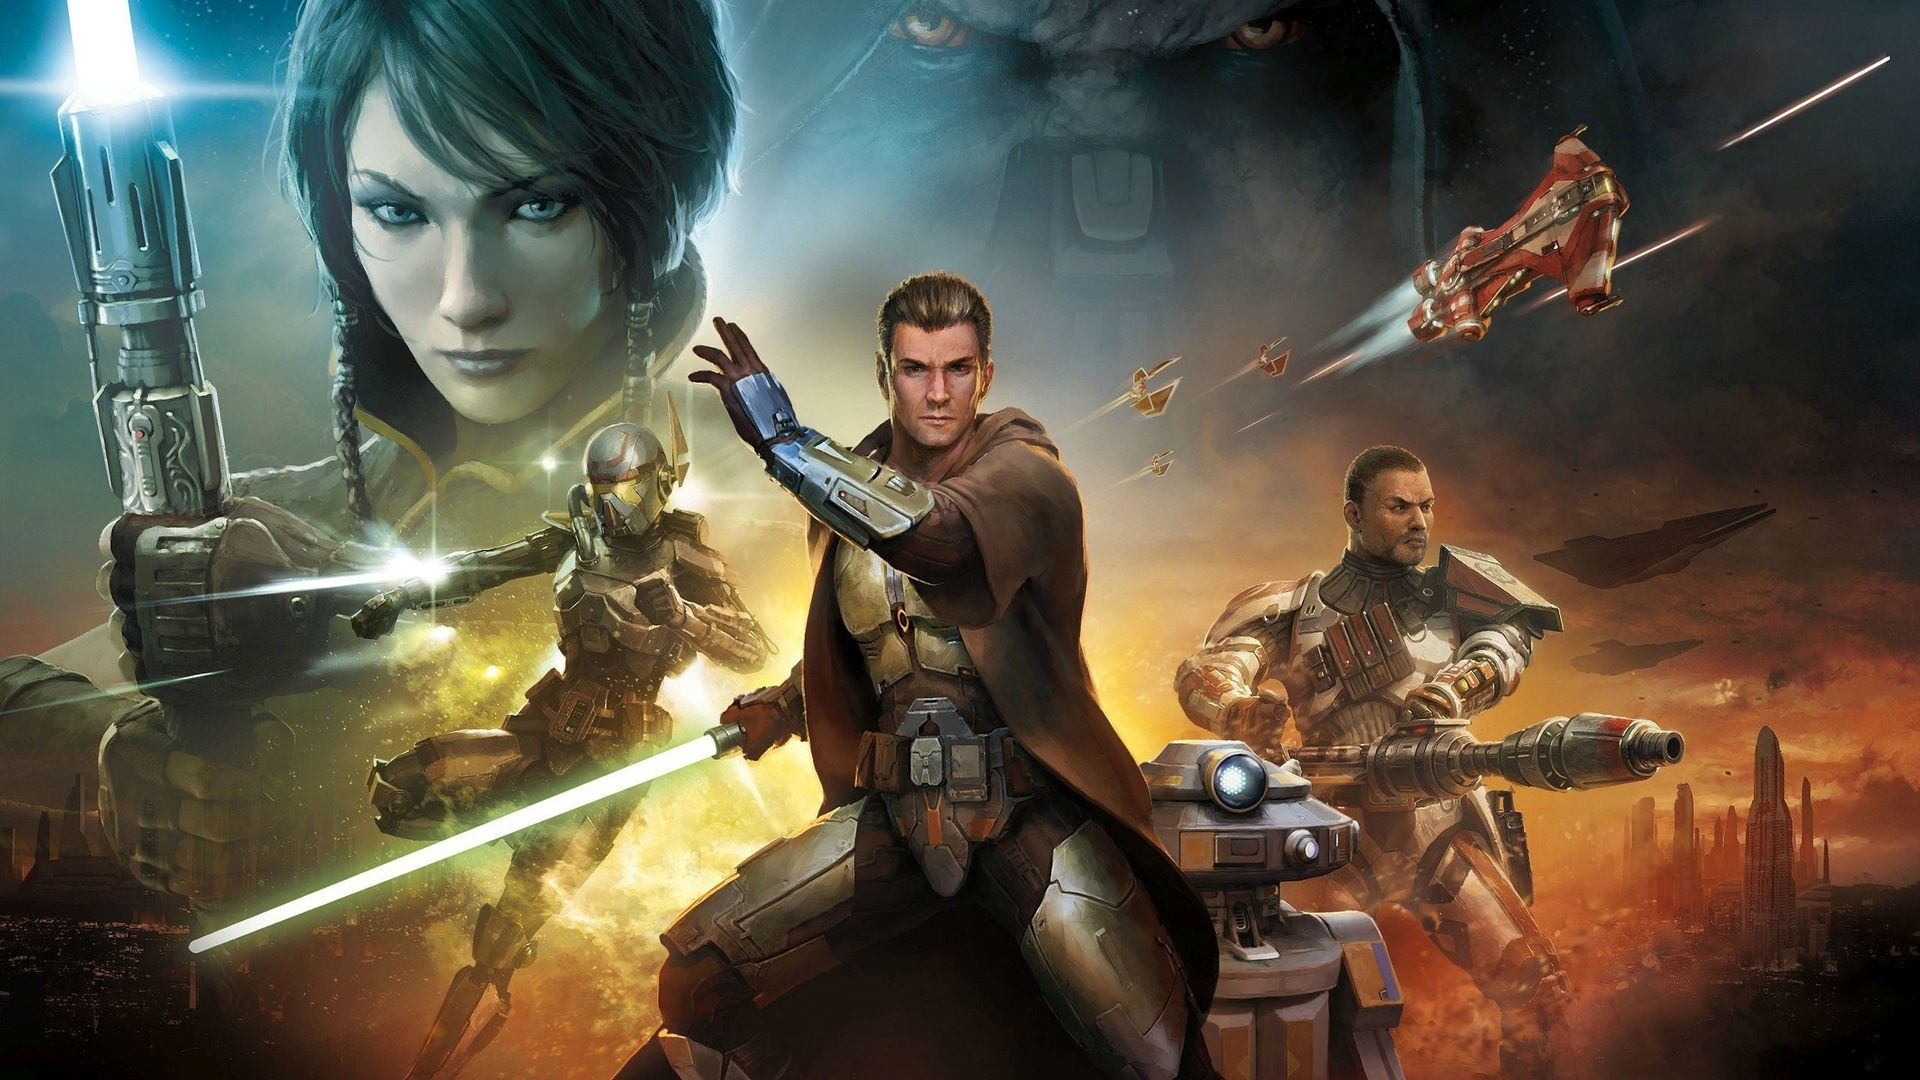 star wars the old republic game hd wallpaper 1920x1080 13852